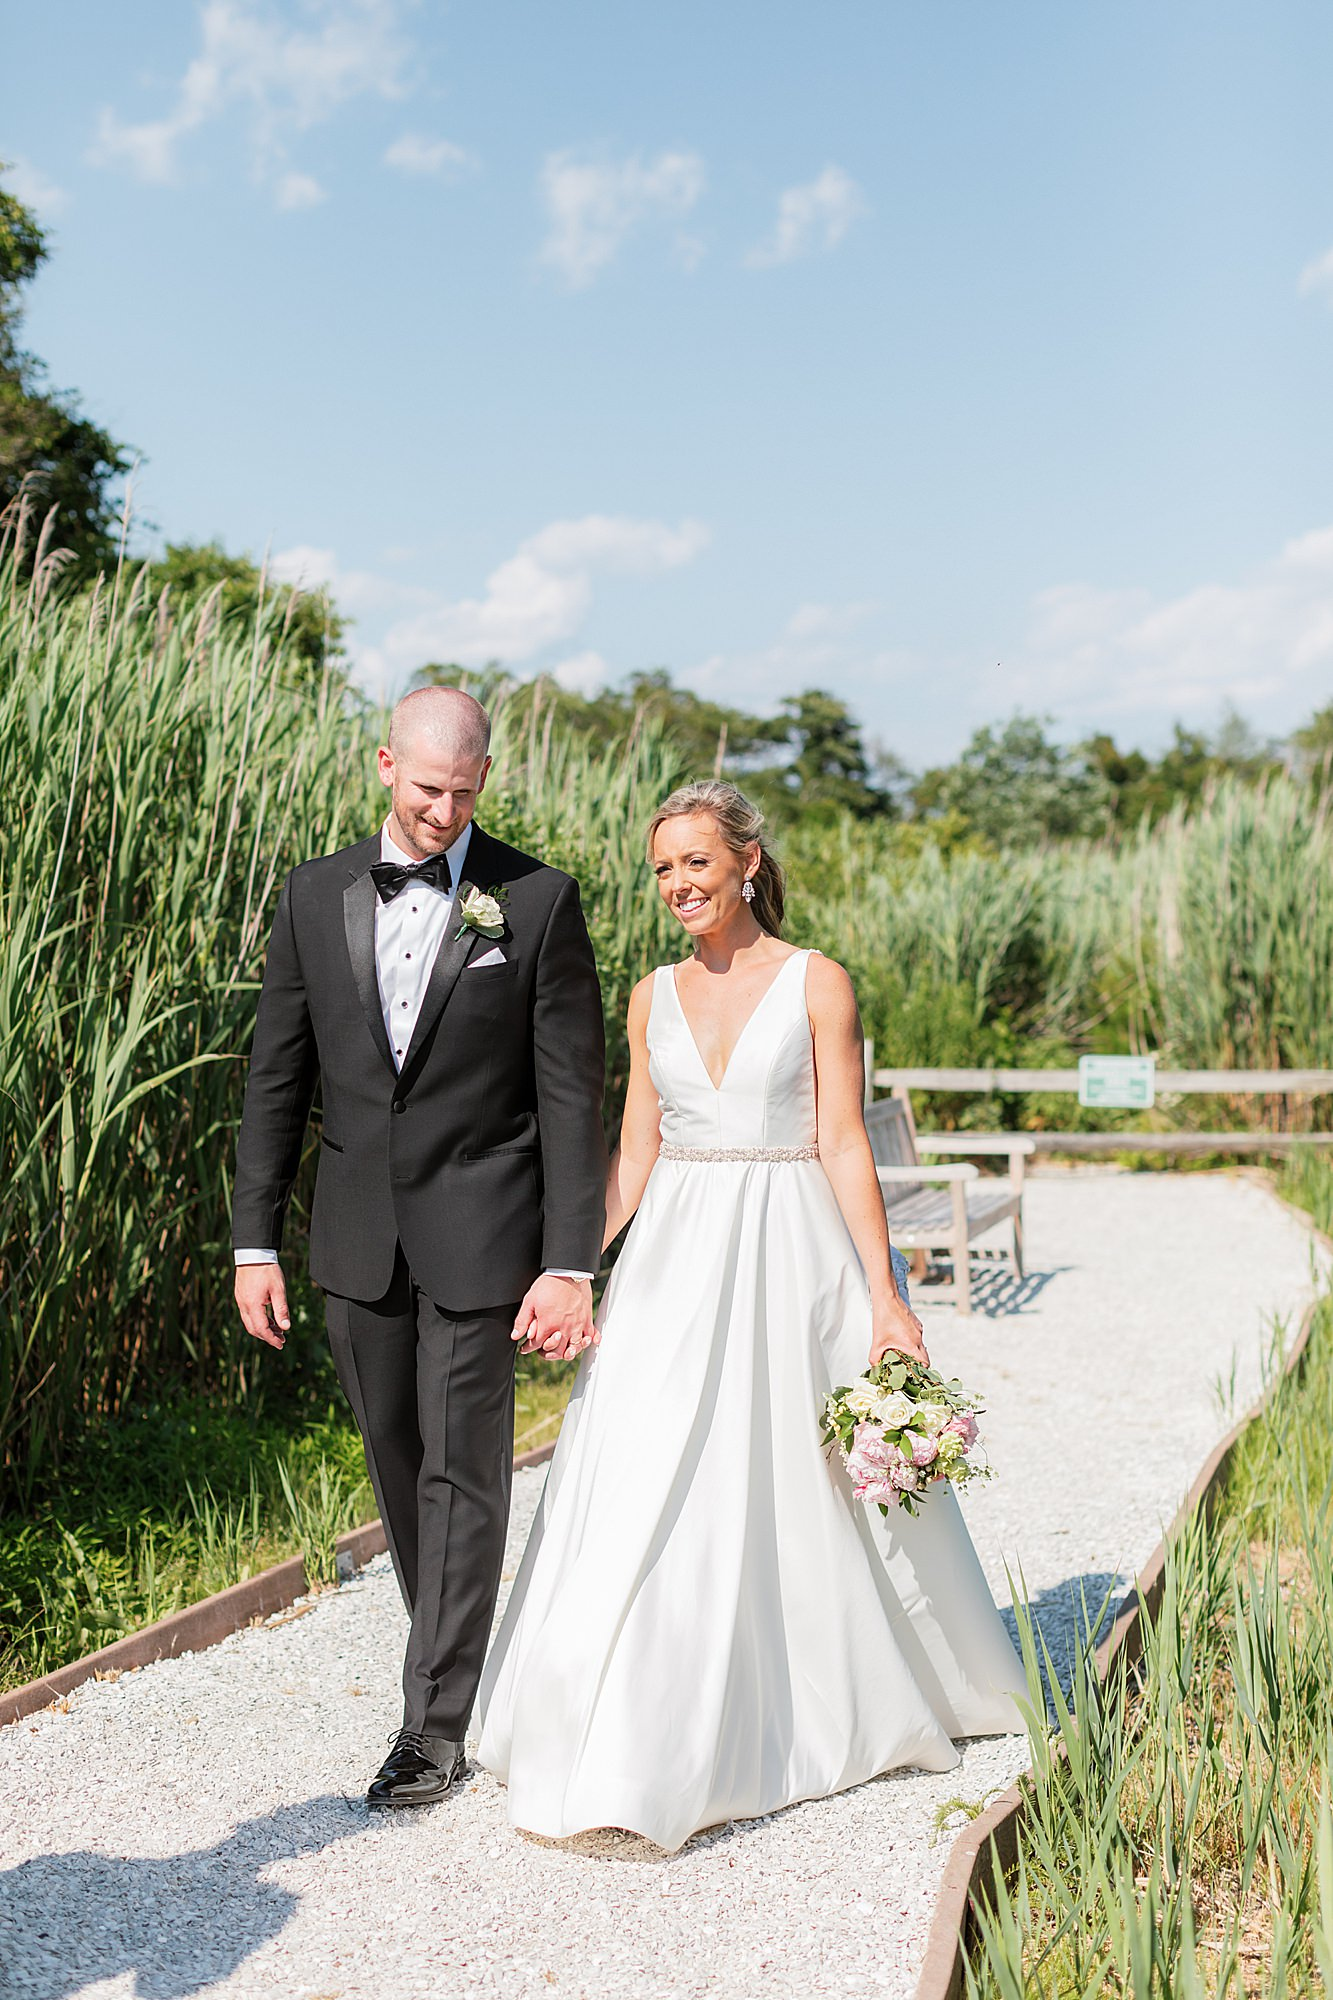 Natural and Vibrant Wedding Photography at the Reeds in Stone Harbor NJ by Magdalena Studios 0044